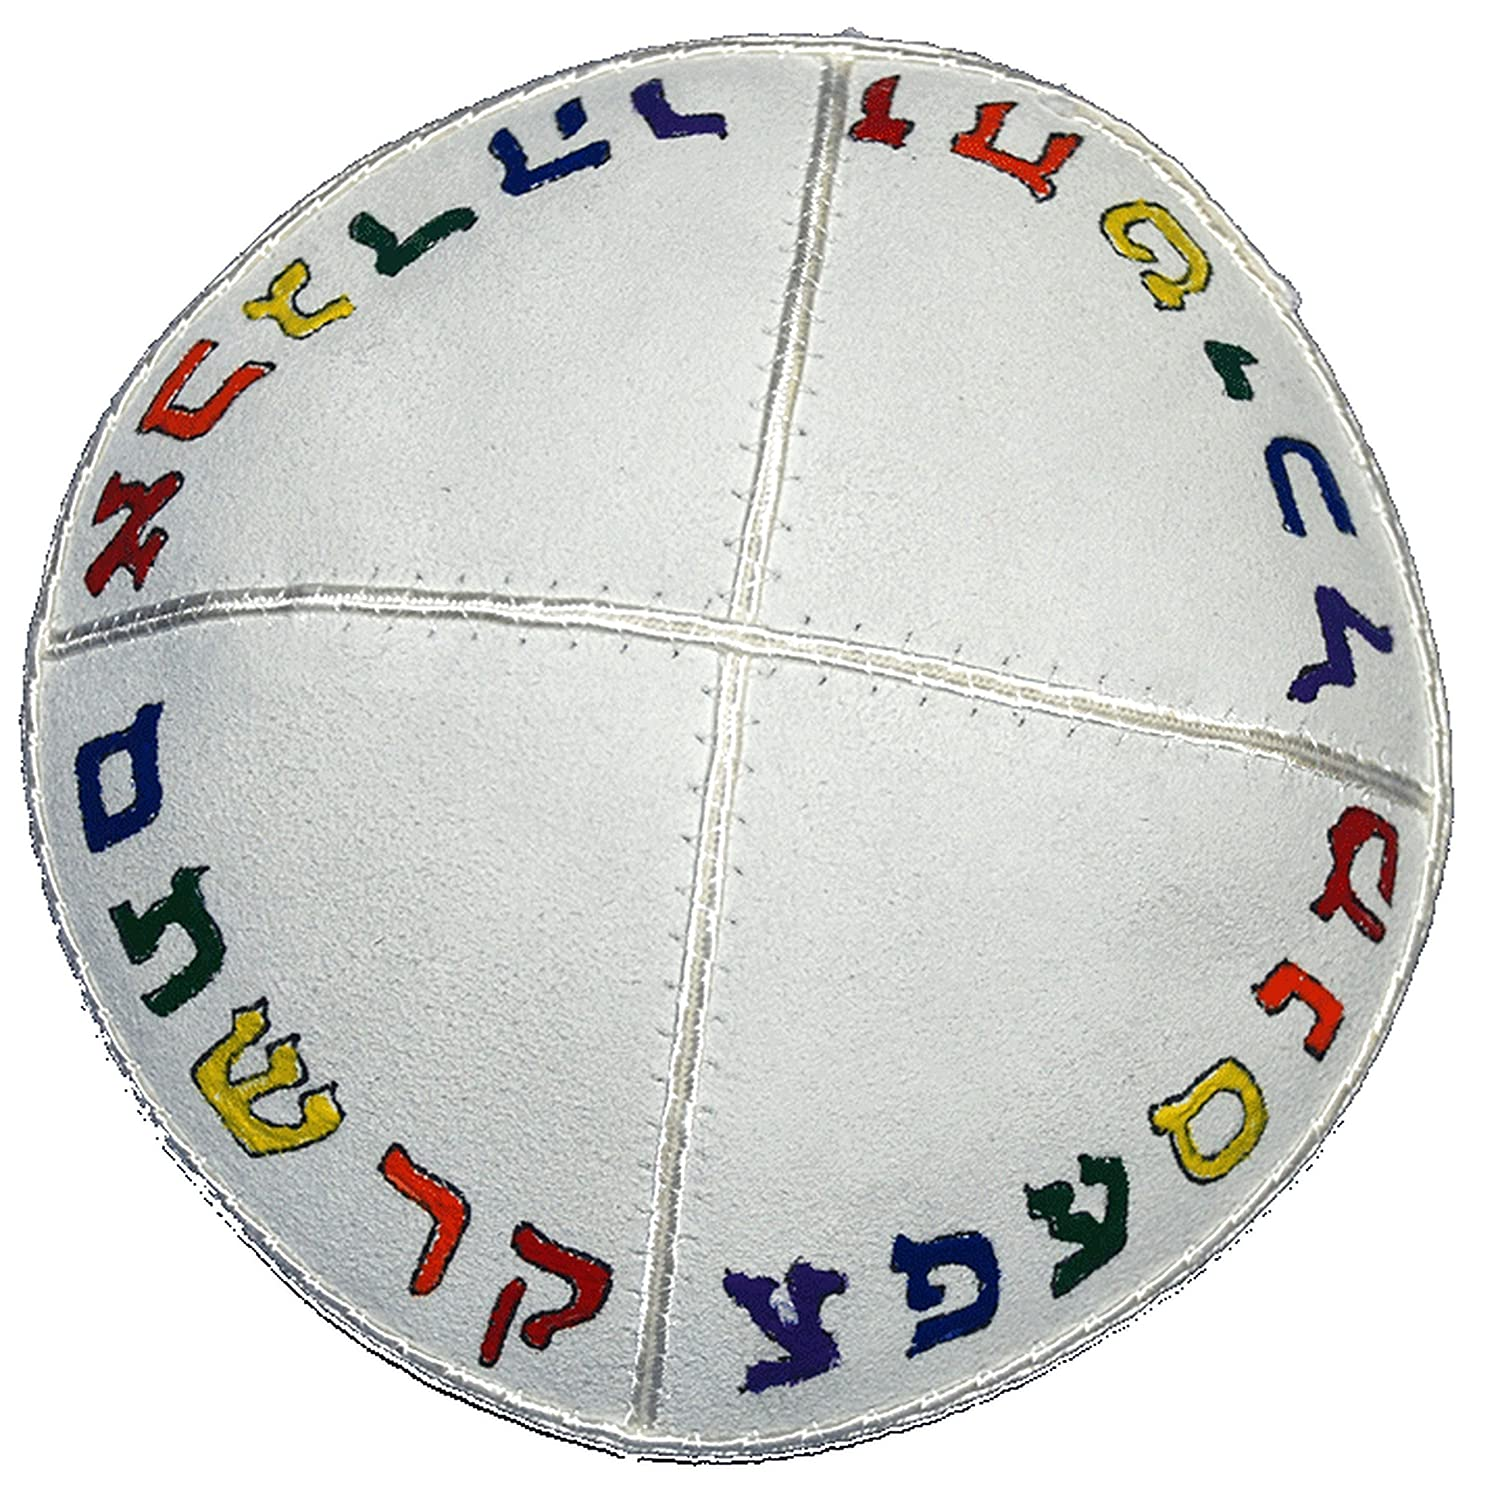 Hand-painted Kippah (Yarmulke) with the Hebrew Alphabet